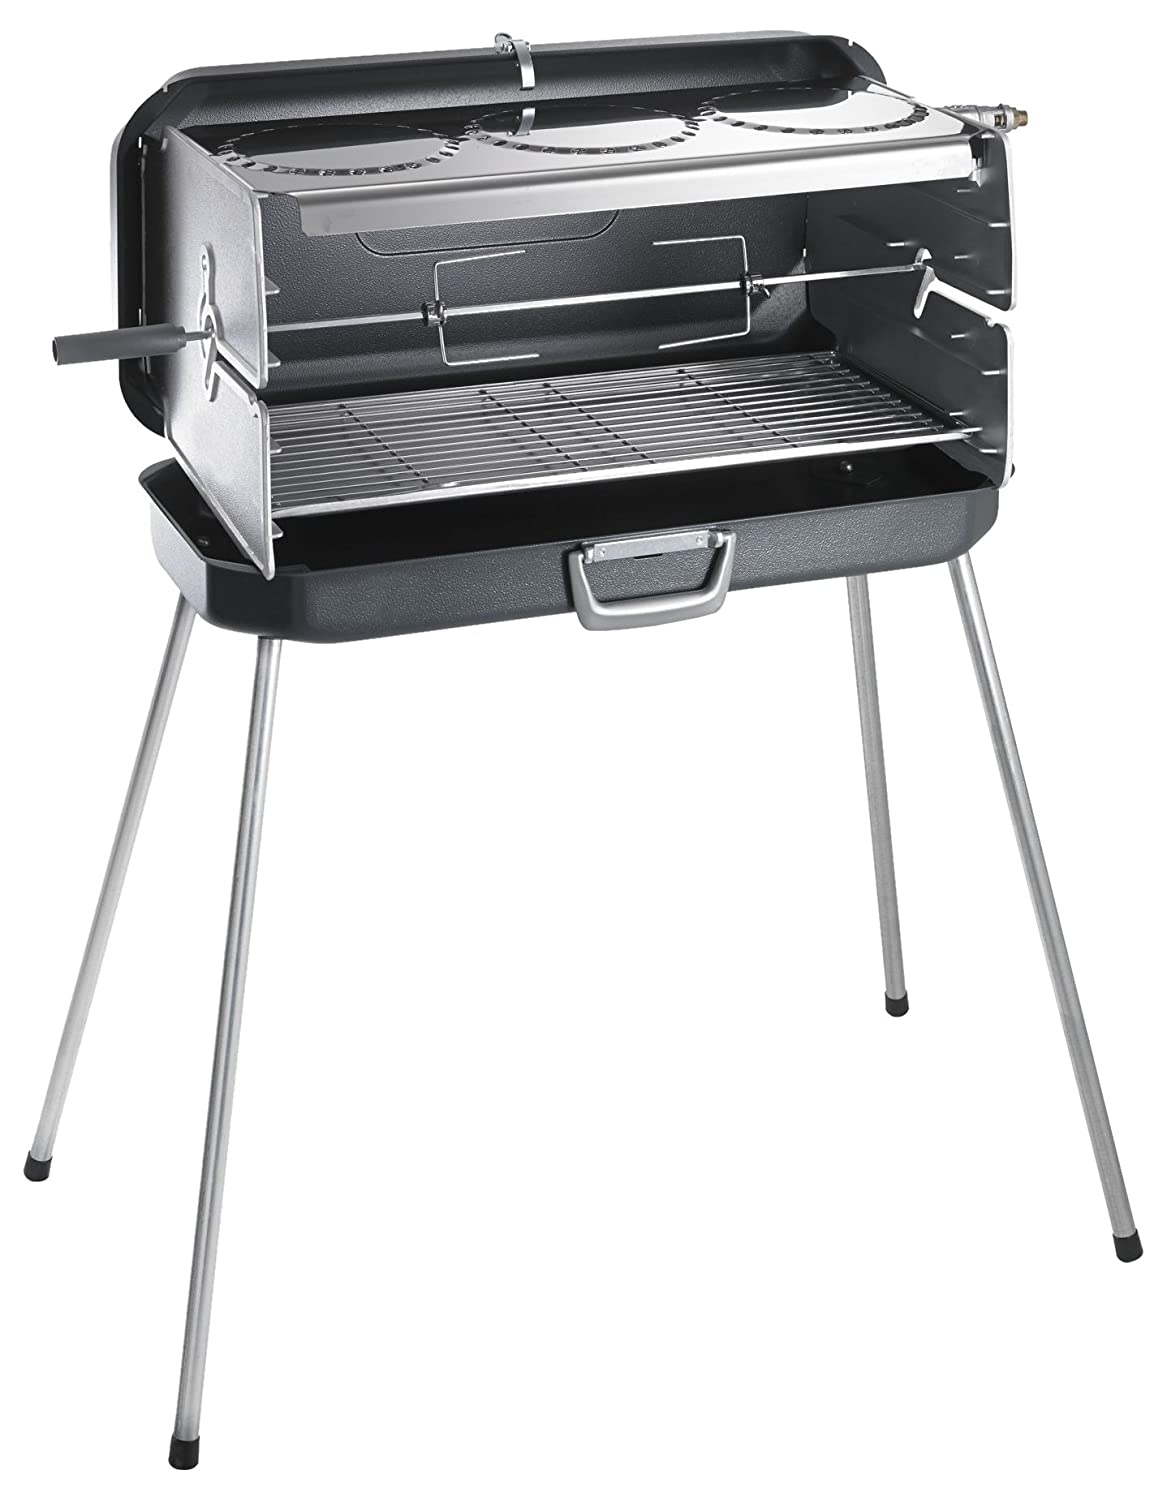 Dometic Classic One Portable Grill/Hob 9103300172